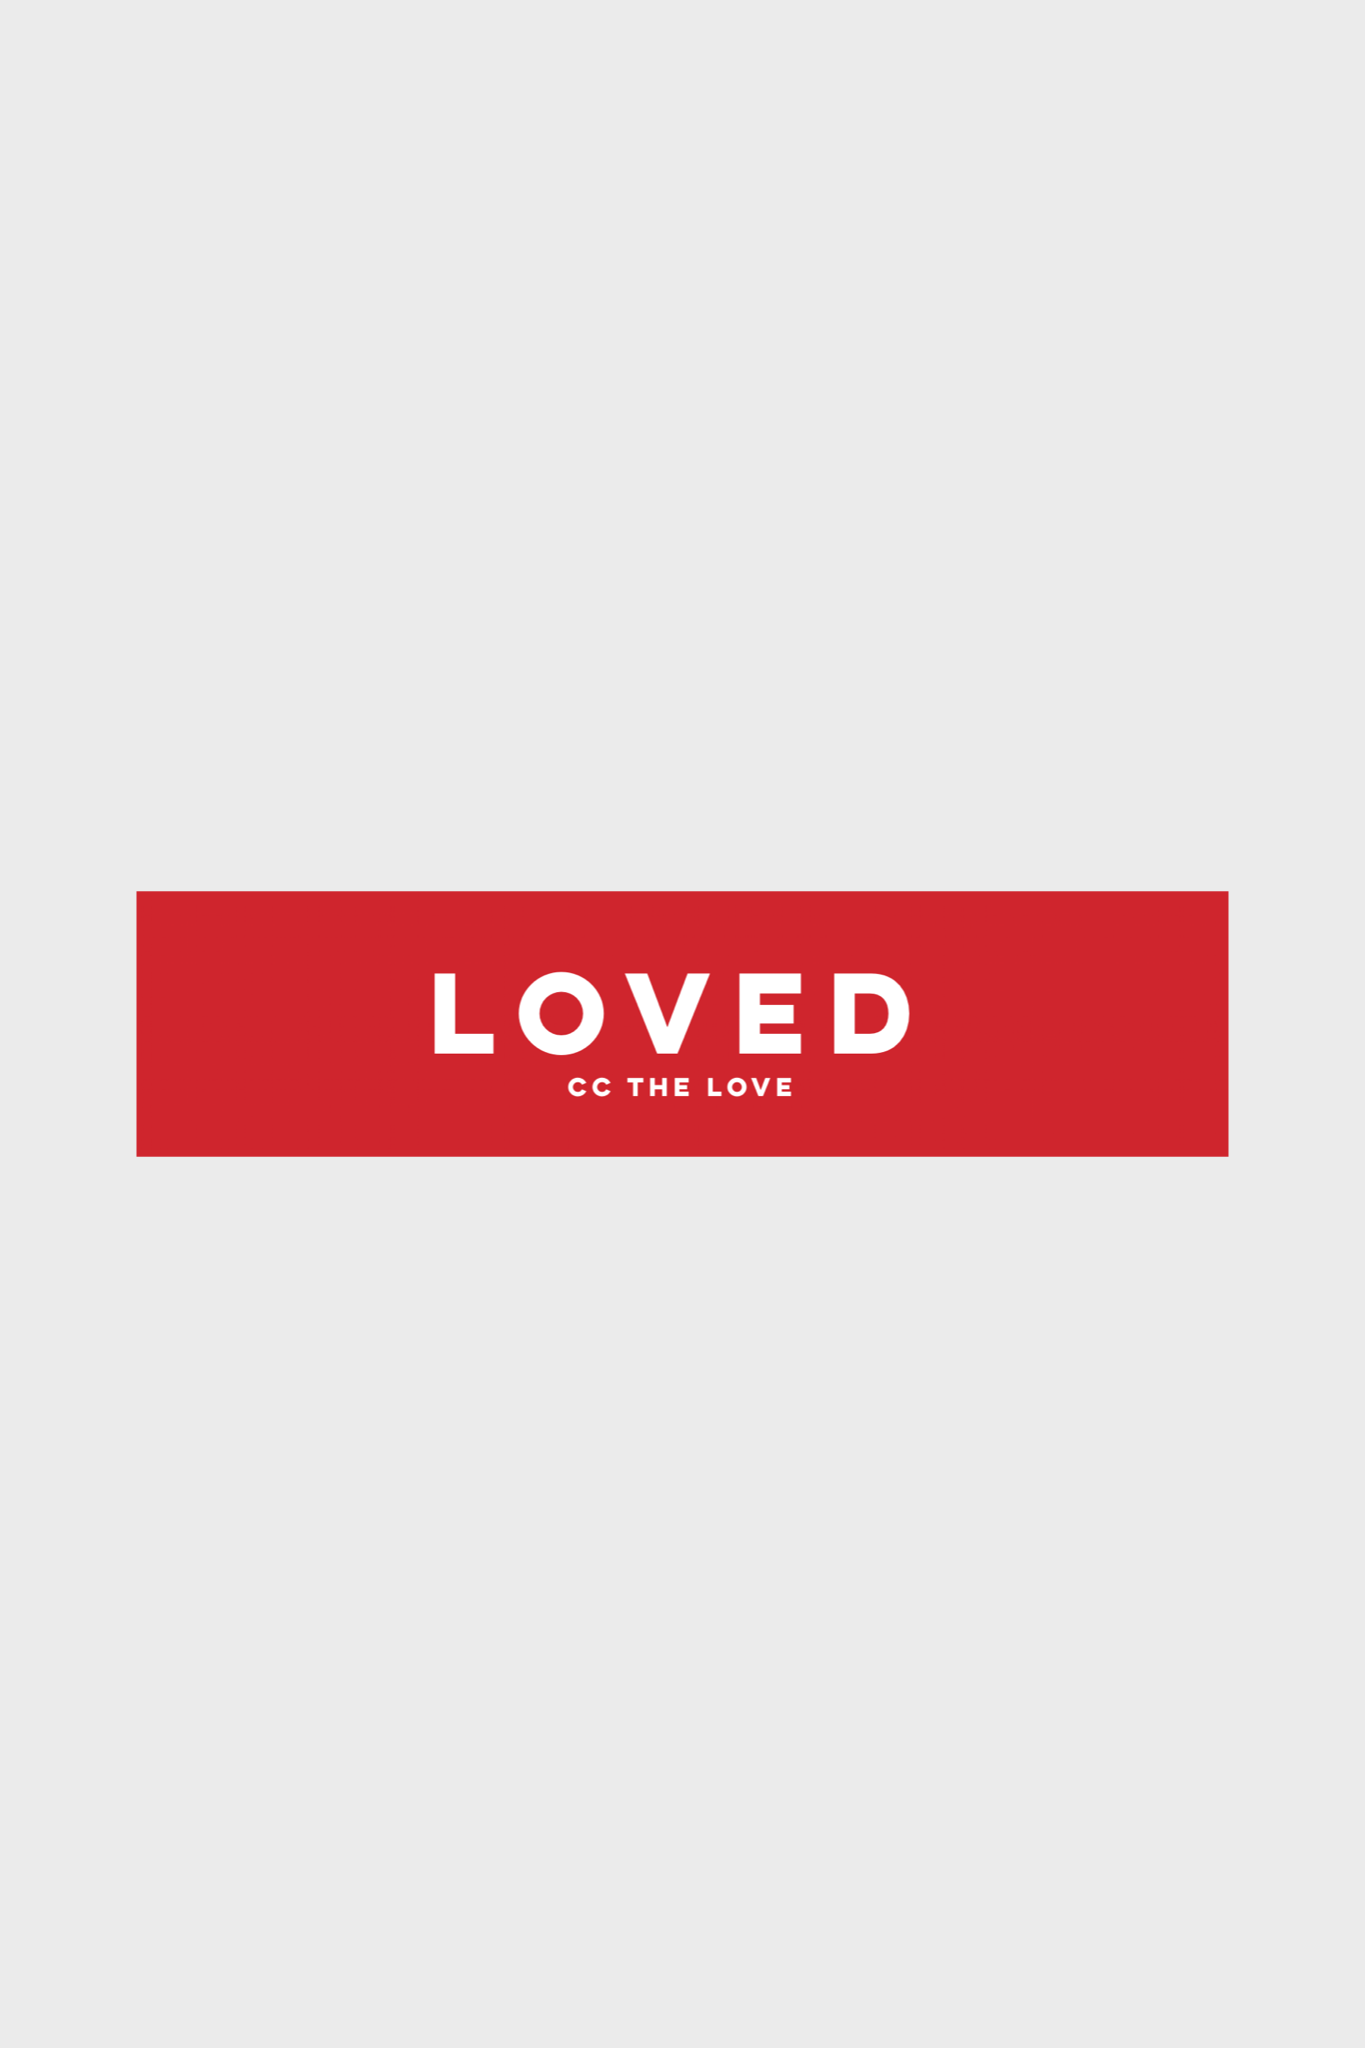 ccthelove loved graphic